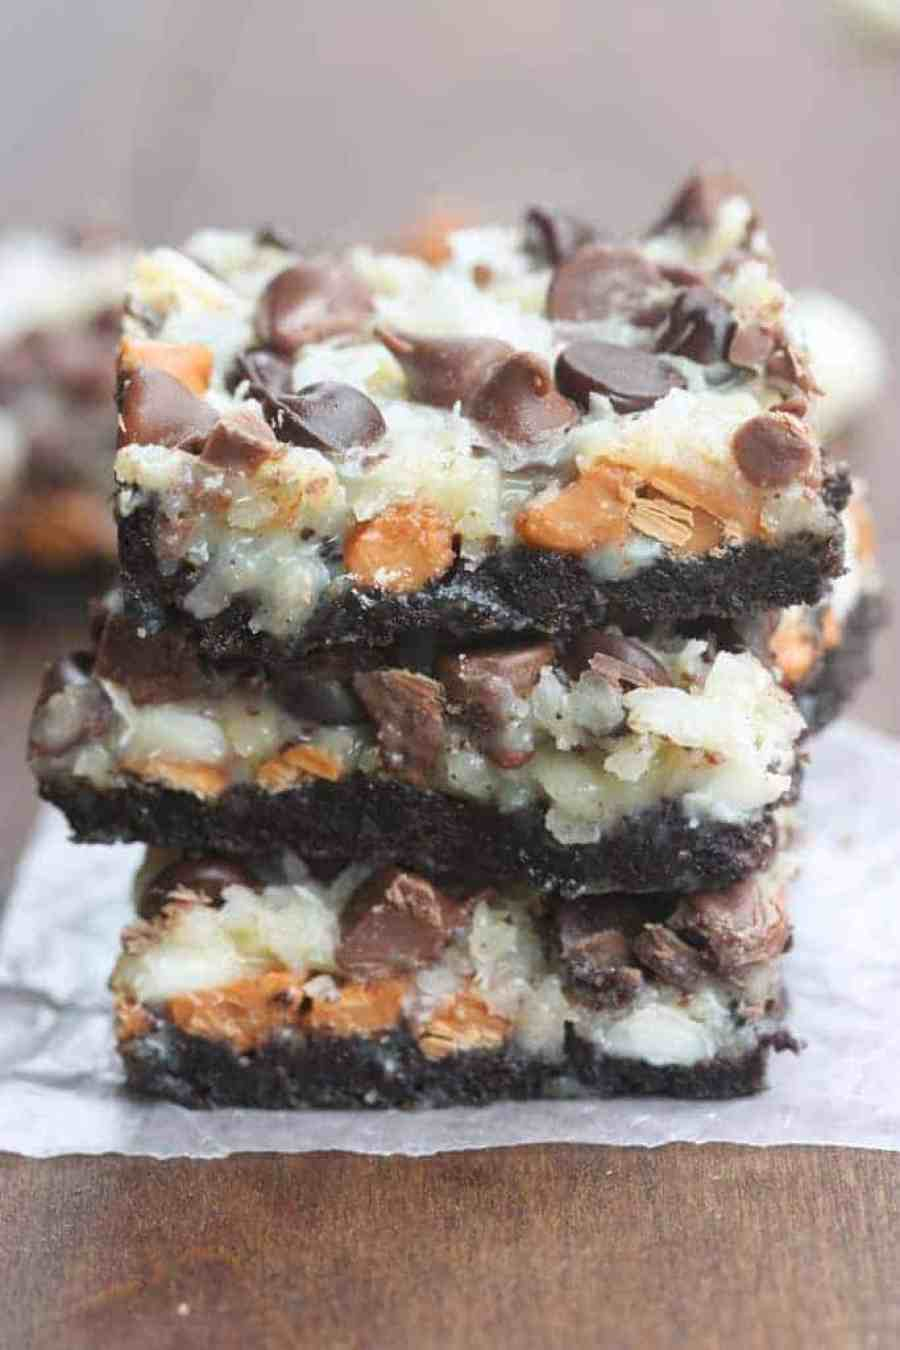 Oreo Magic Bars - Seven simple layers of Oreo chocolate bliss starting with an Oreo crust, three different types of chocolate chips, coconut and nuts. This is the EASIEST dessert, and always a party favorite.   Tastes Better From Scratch